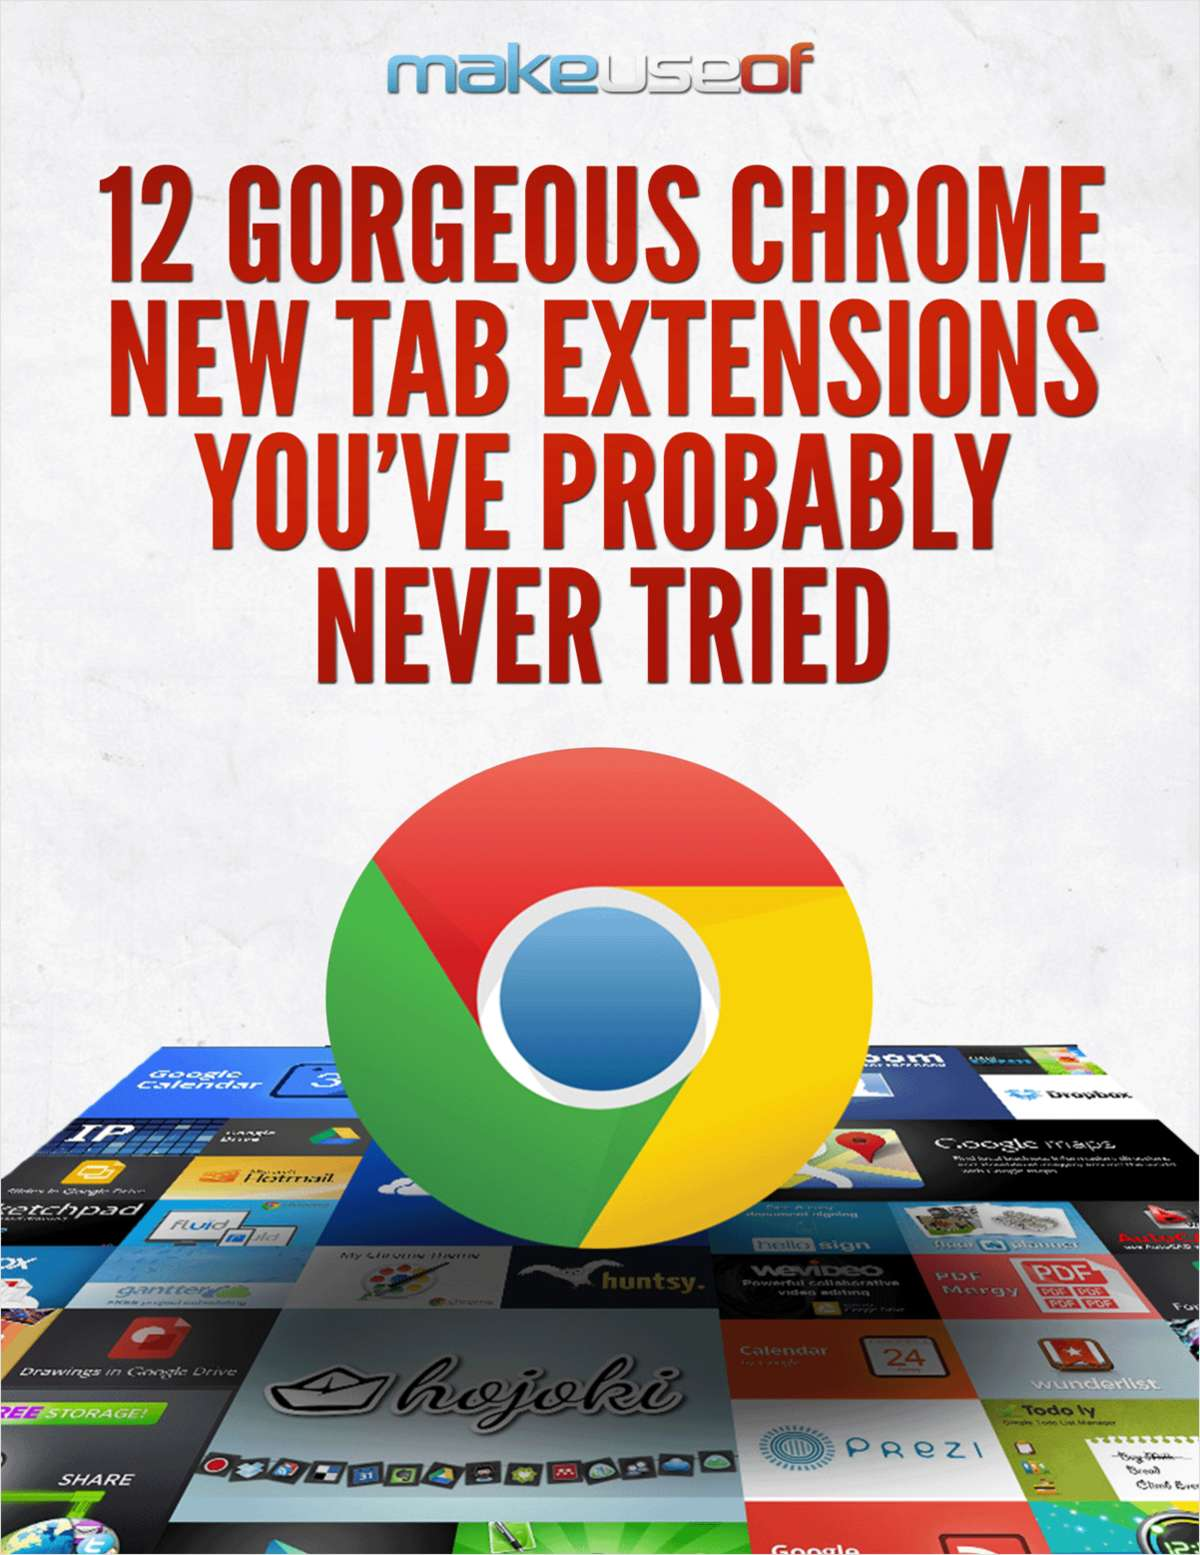 12 Gorgeous Chrome New Tab Extensions You've Probably Never Tried